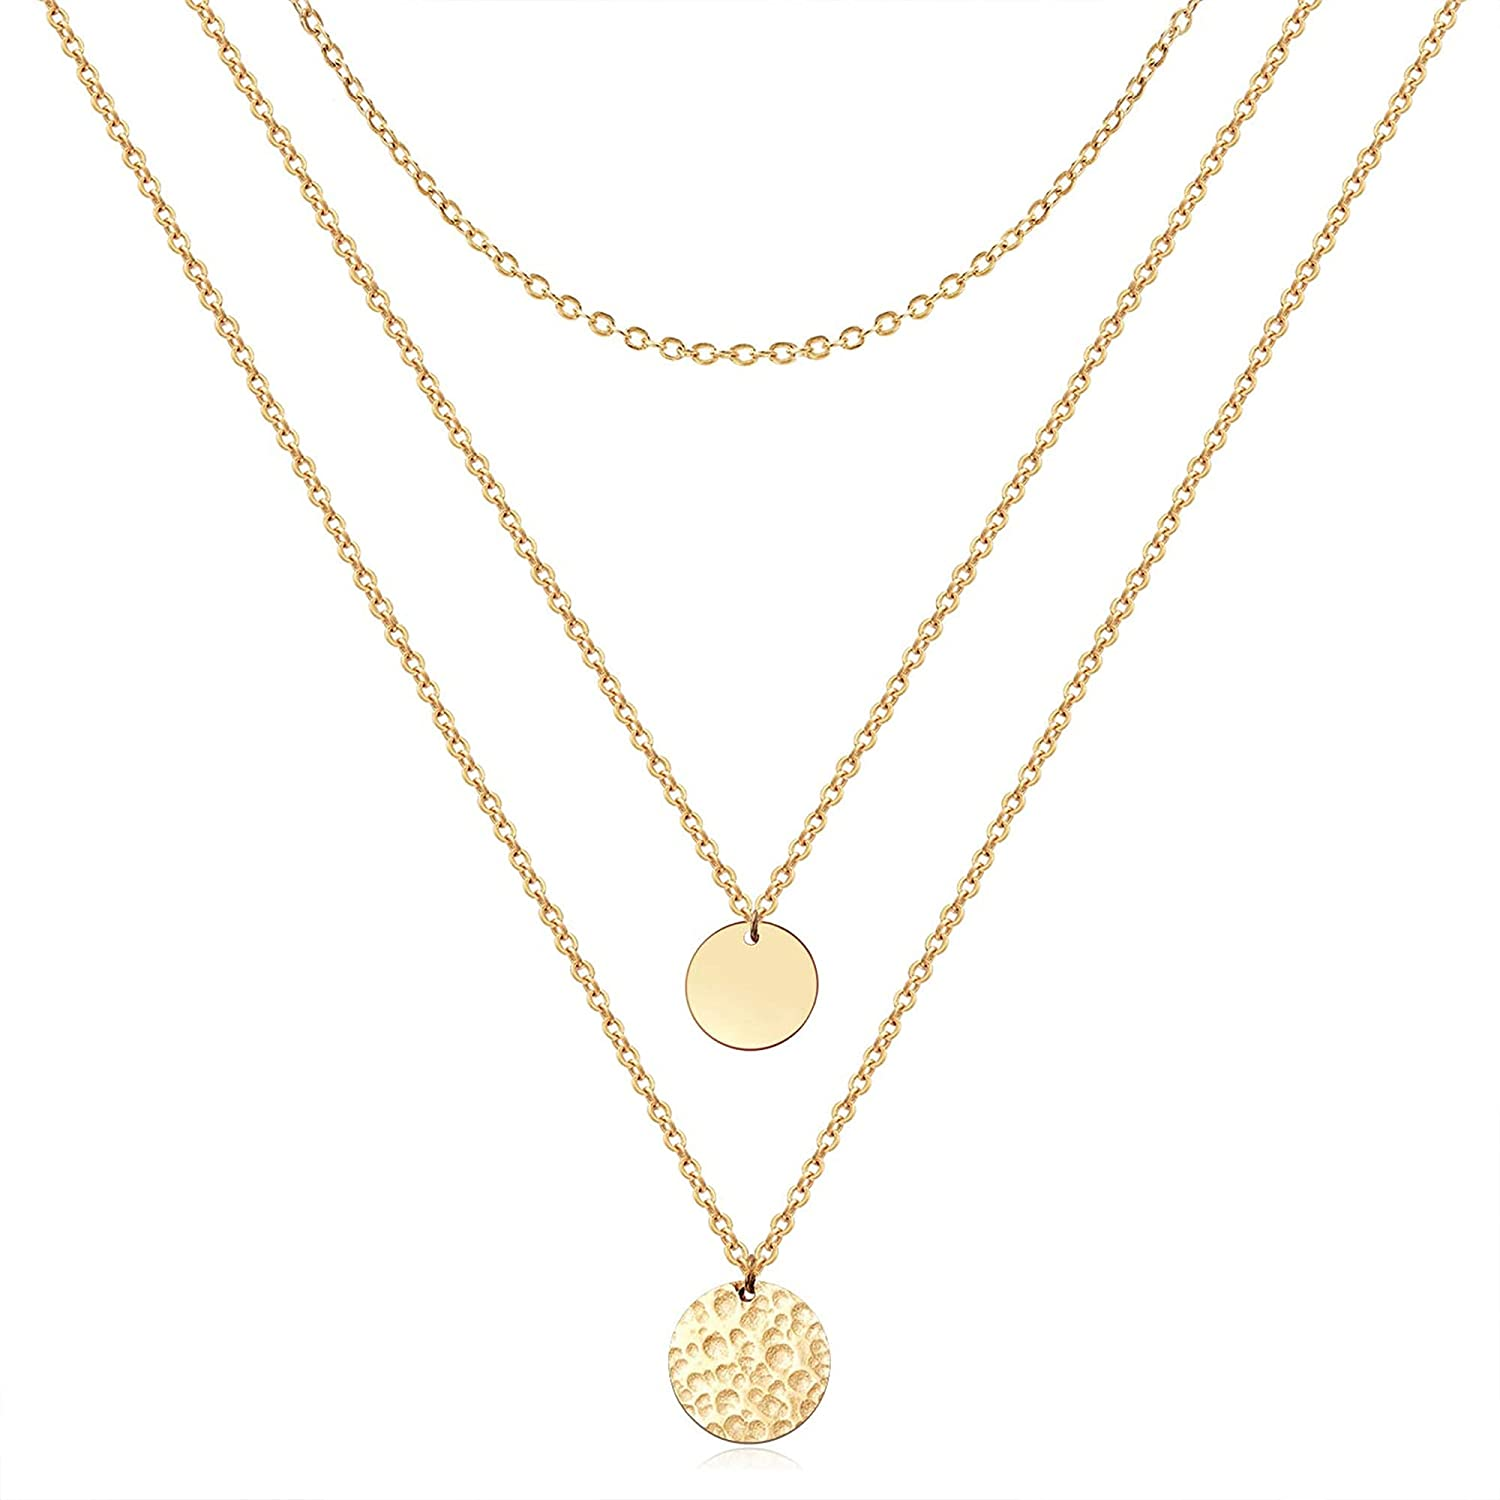 Bestelly Dainty Layered Choker Necklace for Women, 14k Gold Plated Y Pendant Paperclip Chain Bar Layering Necklace for Women